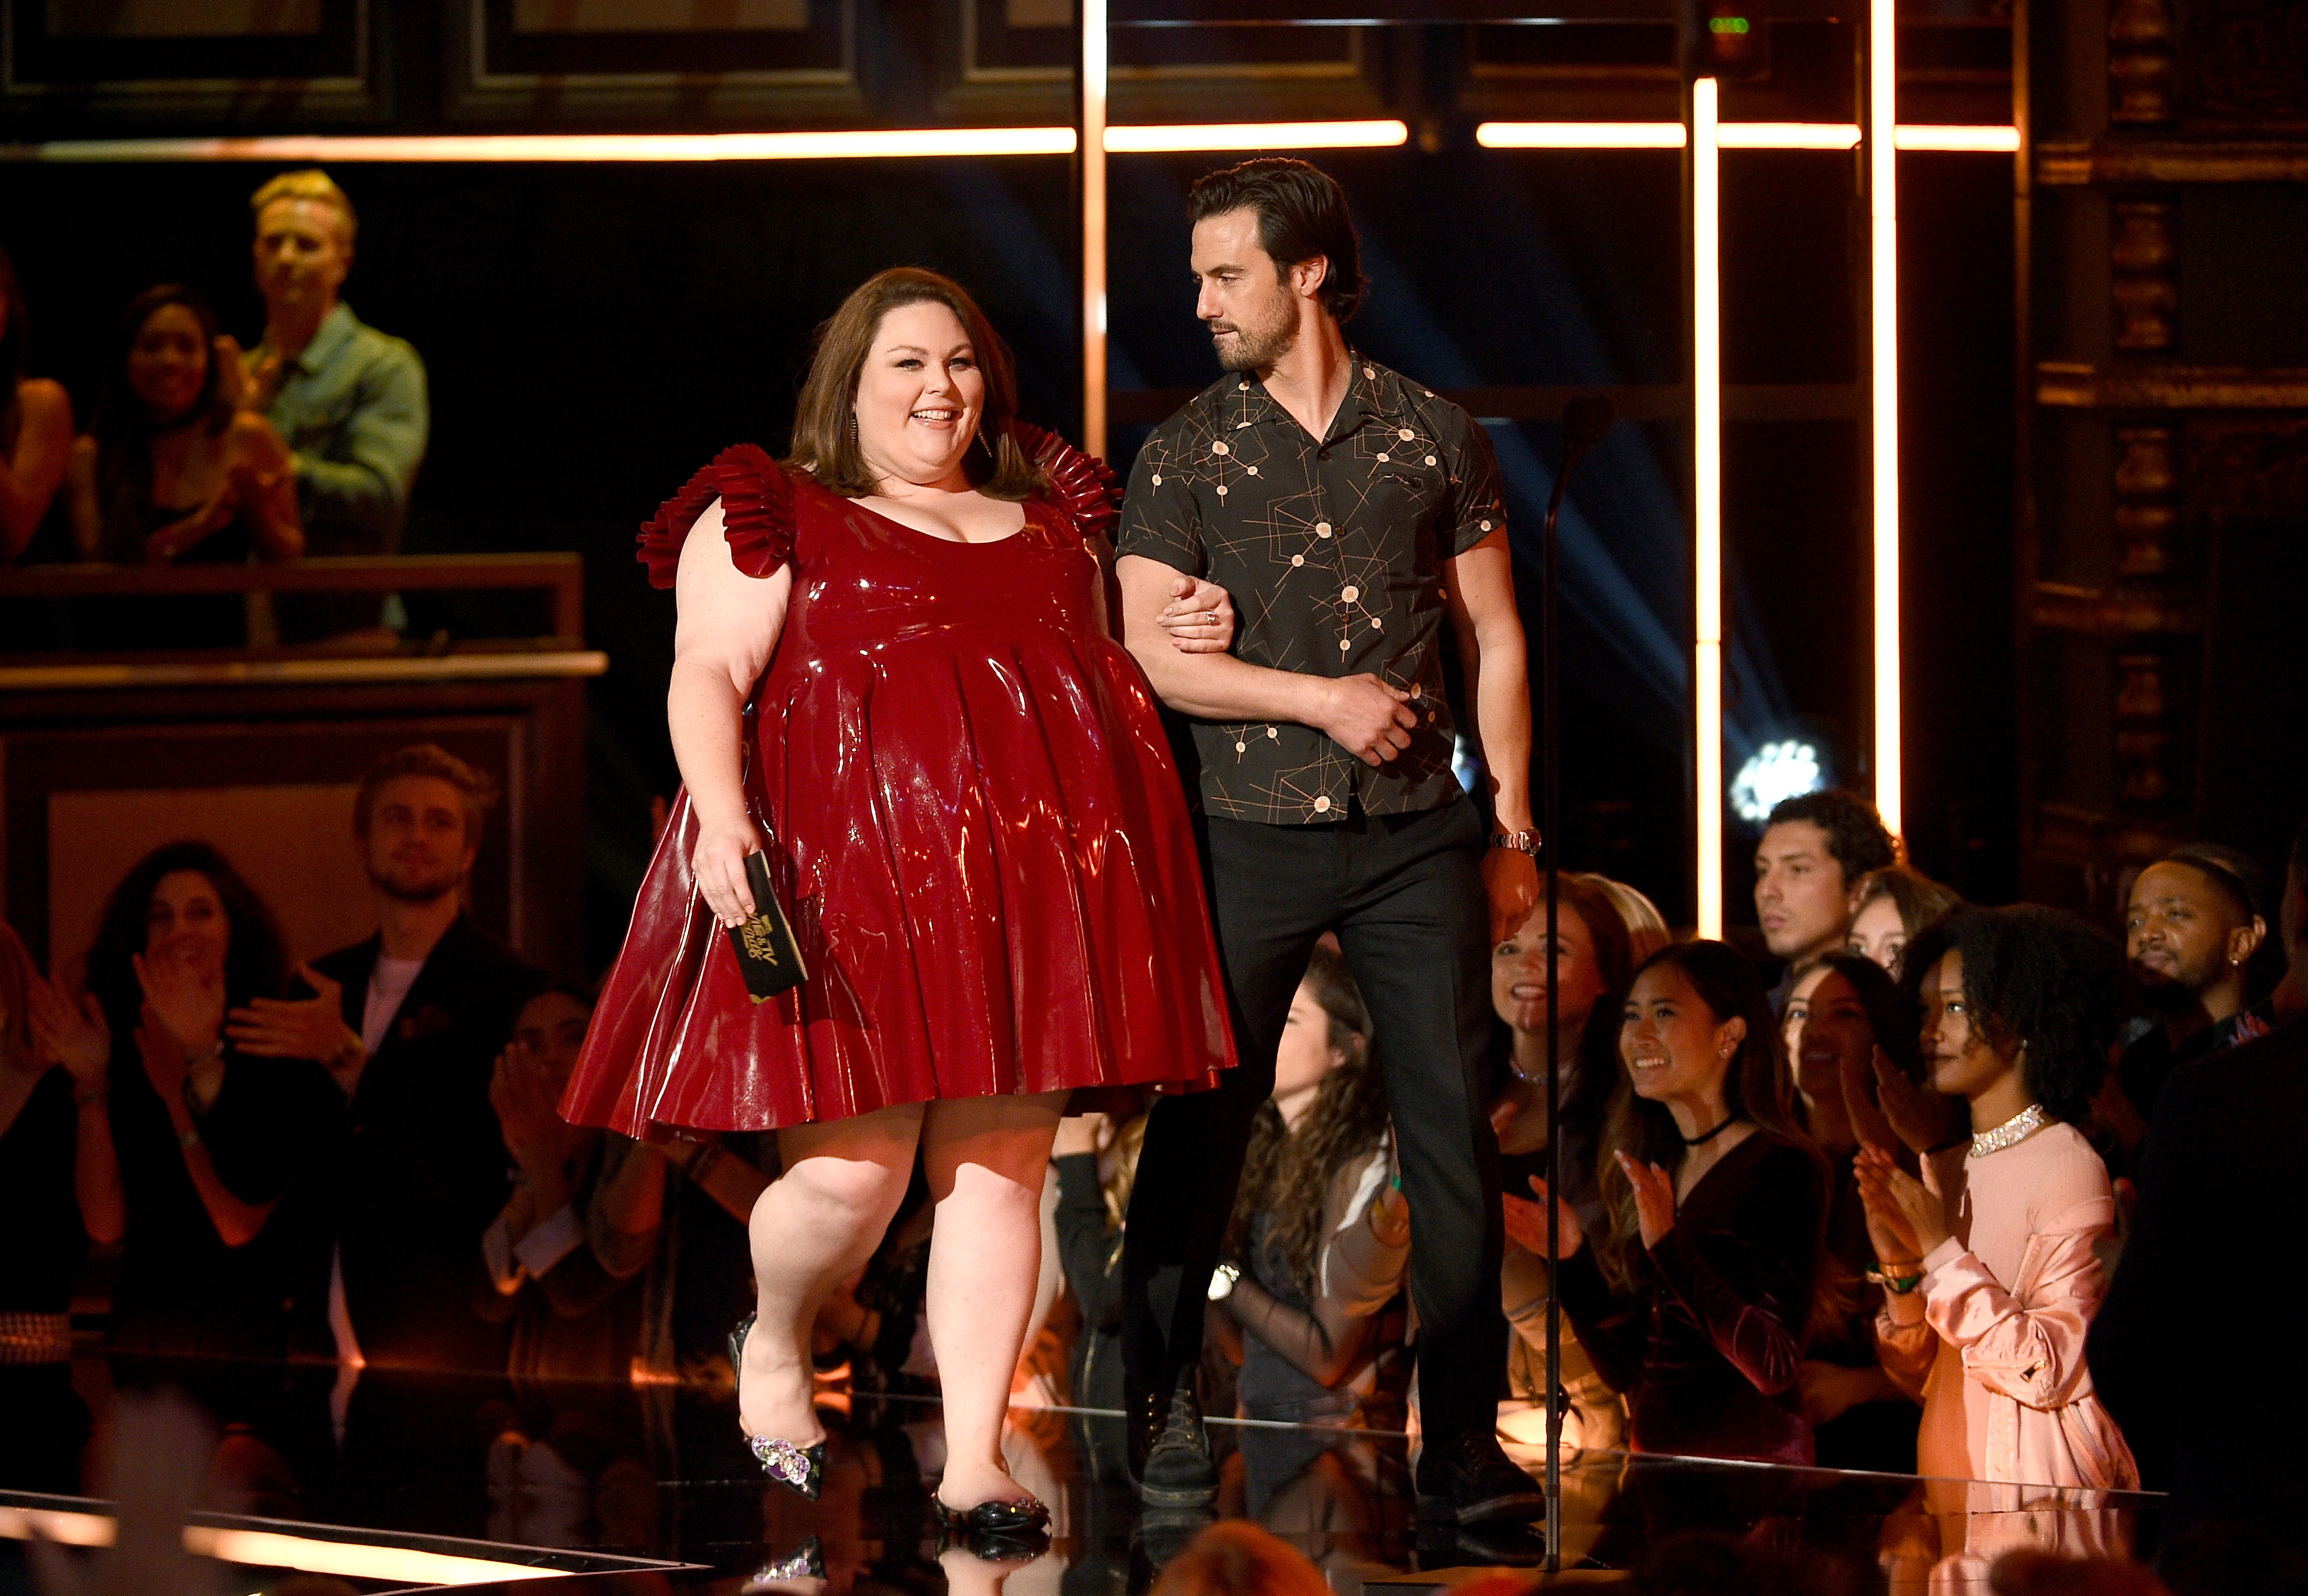 Actors Chrissy Metz and Milo Ventimiglia onstage during the 2017 MTV Movie And TV Awards at The Shrine Auditorium on May 7, 2017 in Los Angeles, California.